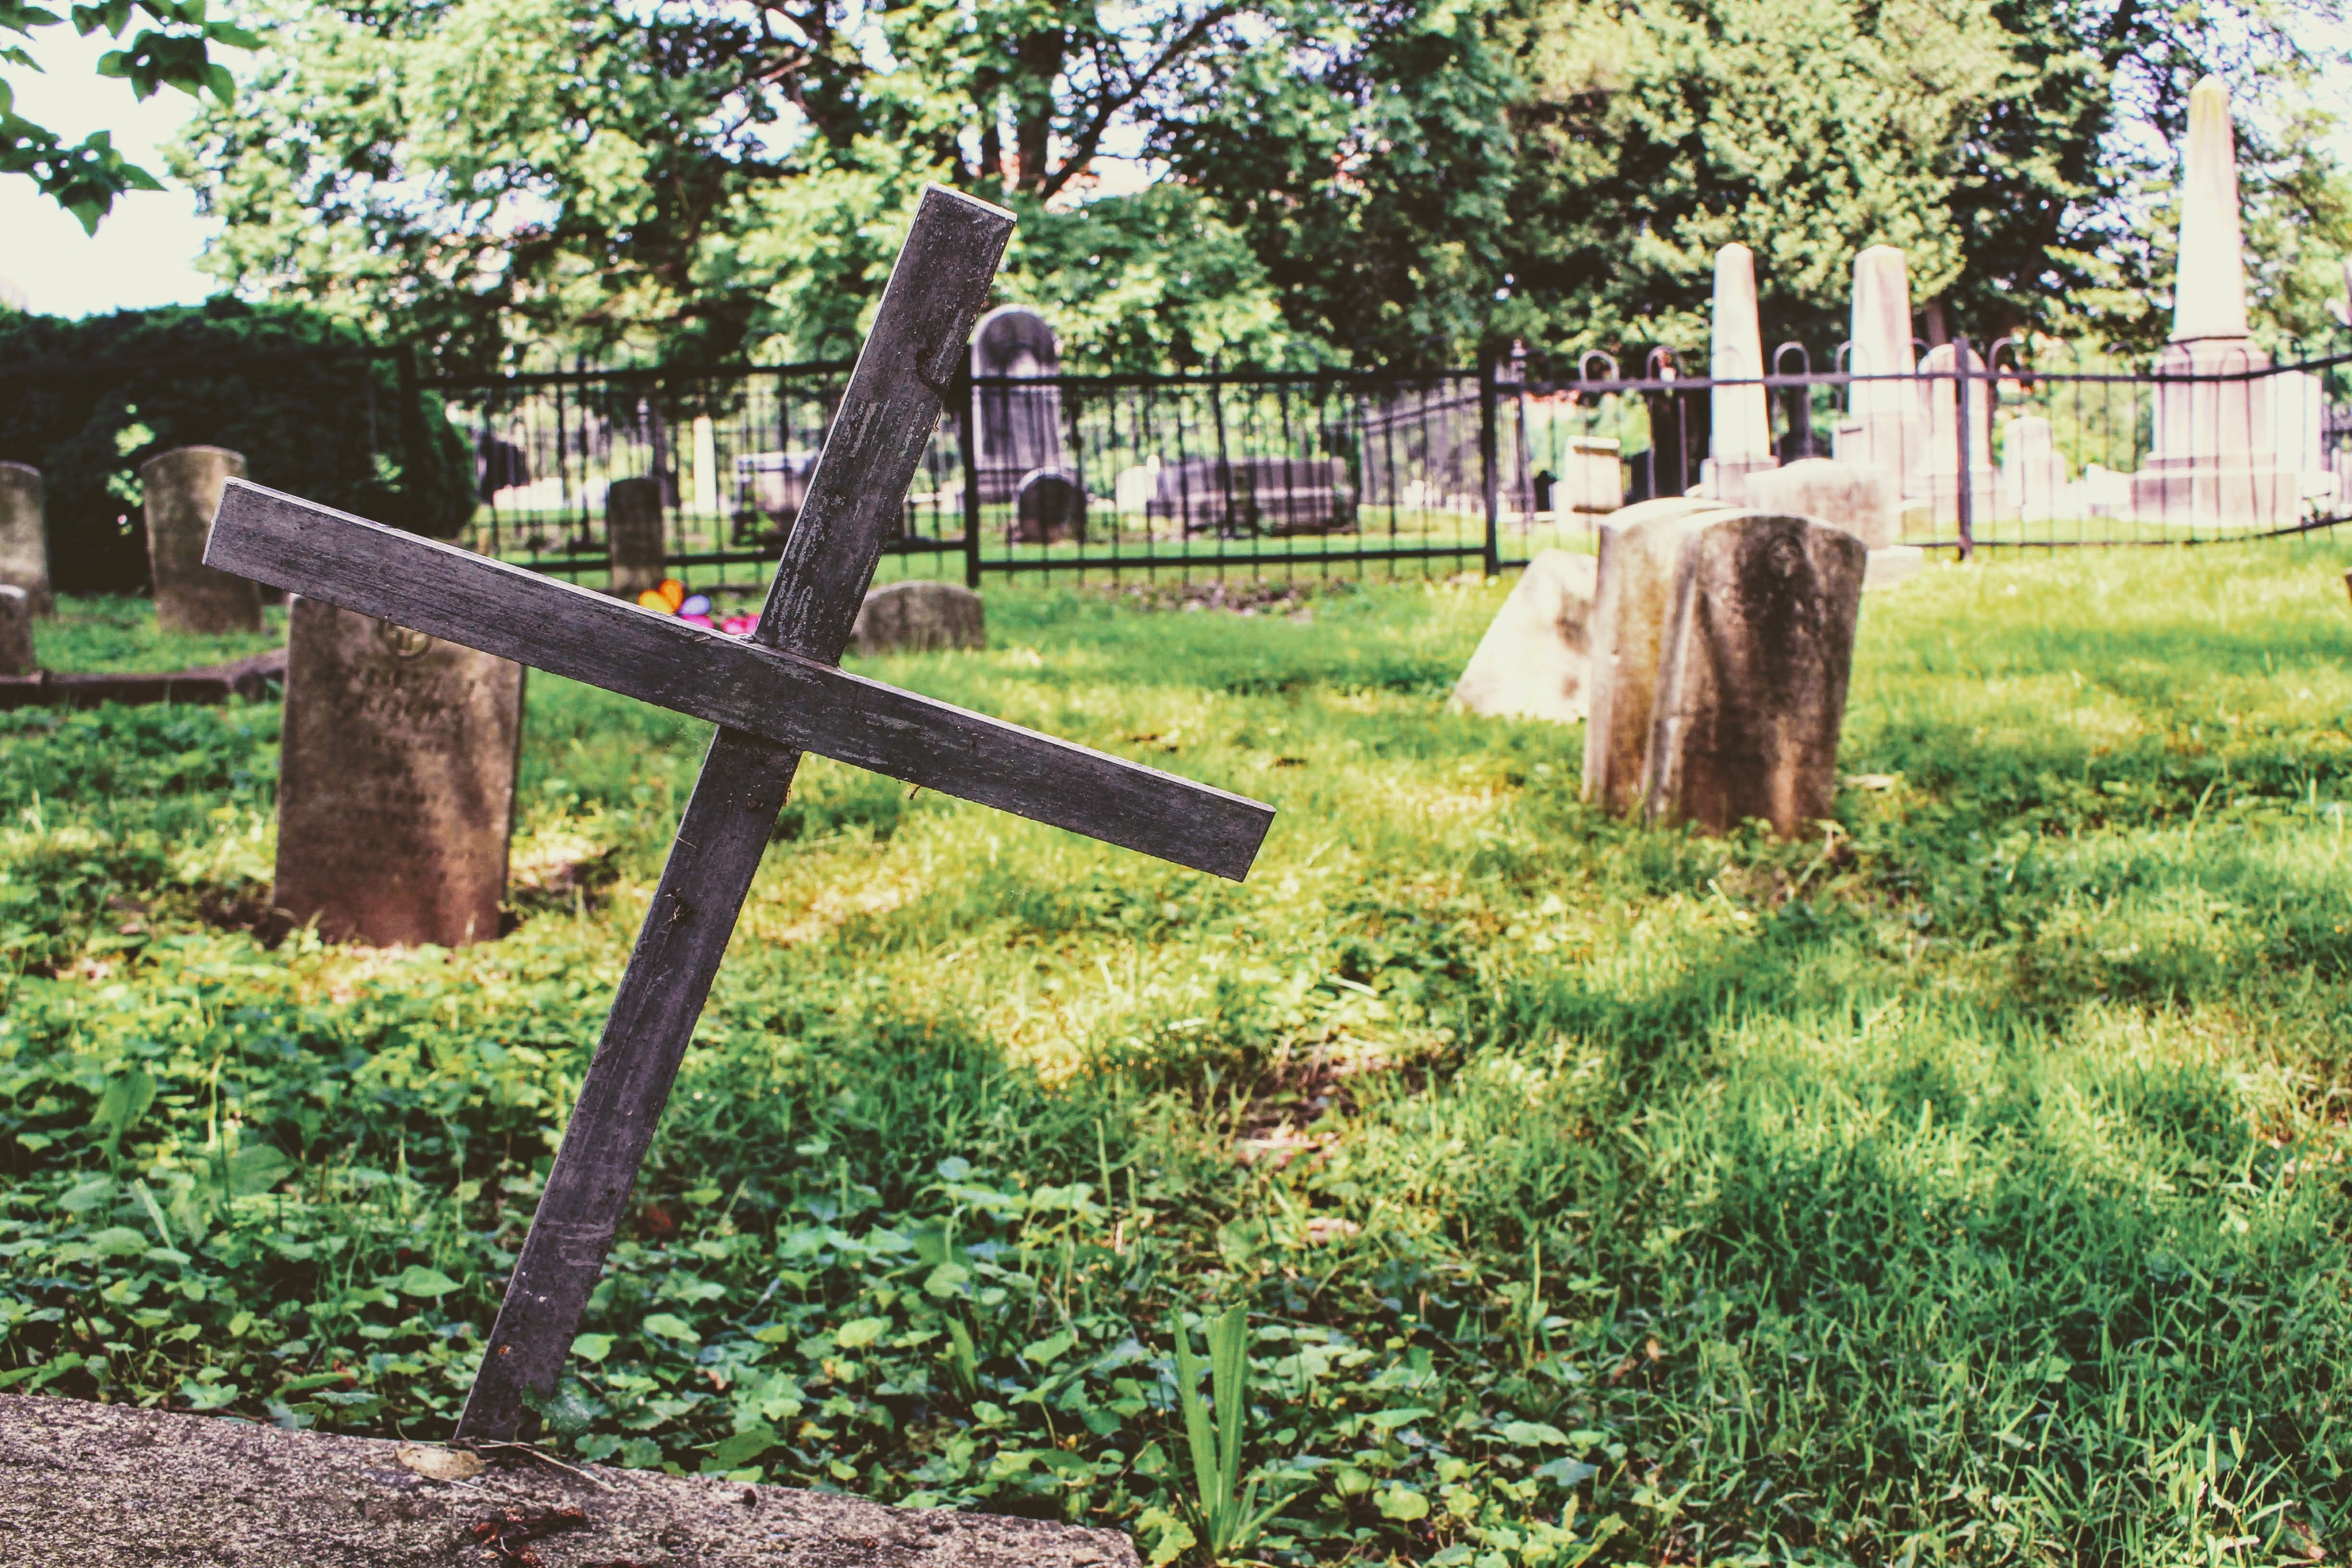 Photography of Wooden Cross on Green Grass